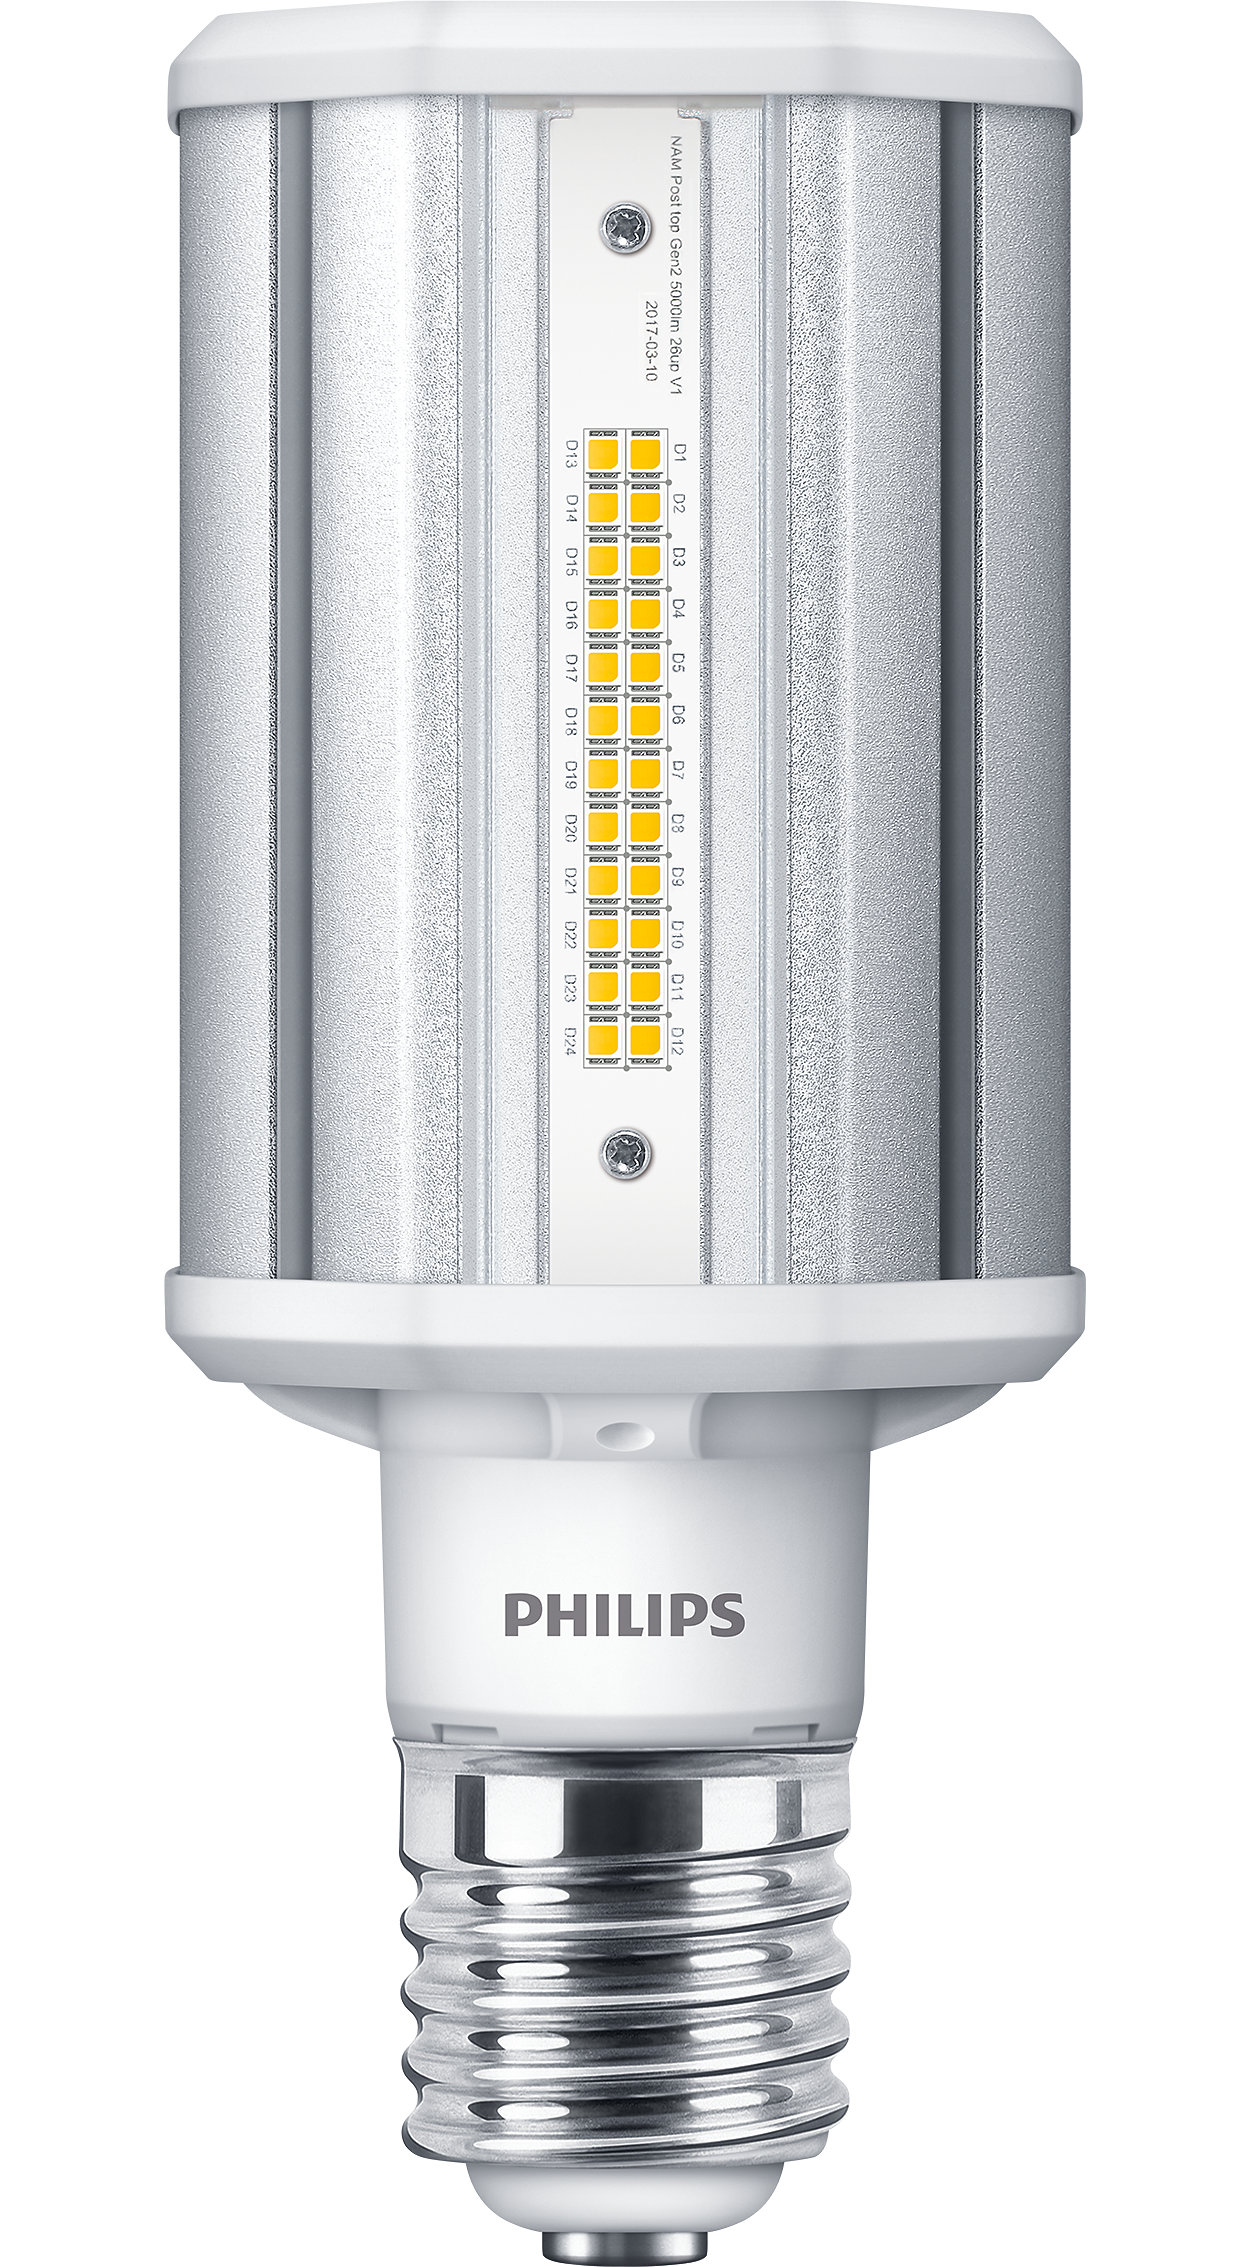 The best LED solution for Post-Top High-Intensity Discharge (HID) lamp replacement with low initial investment